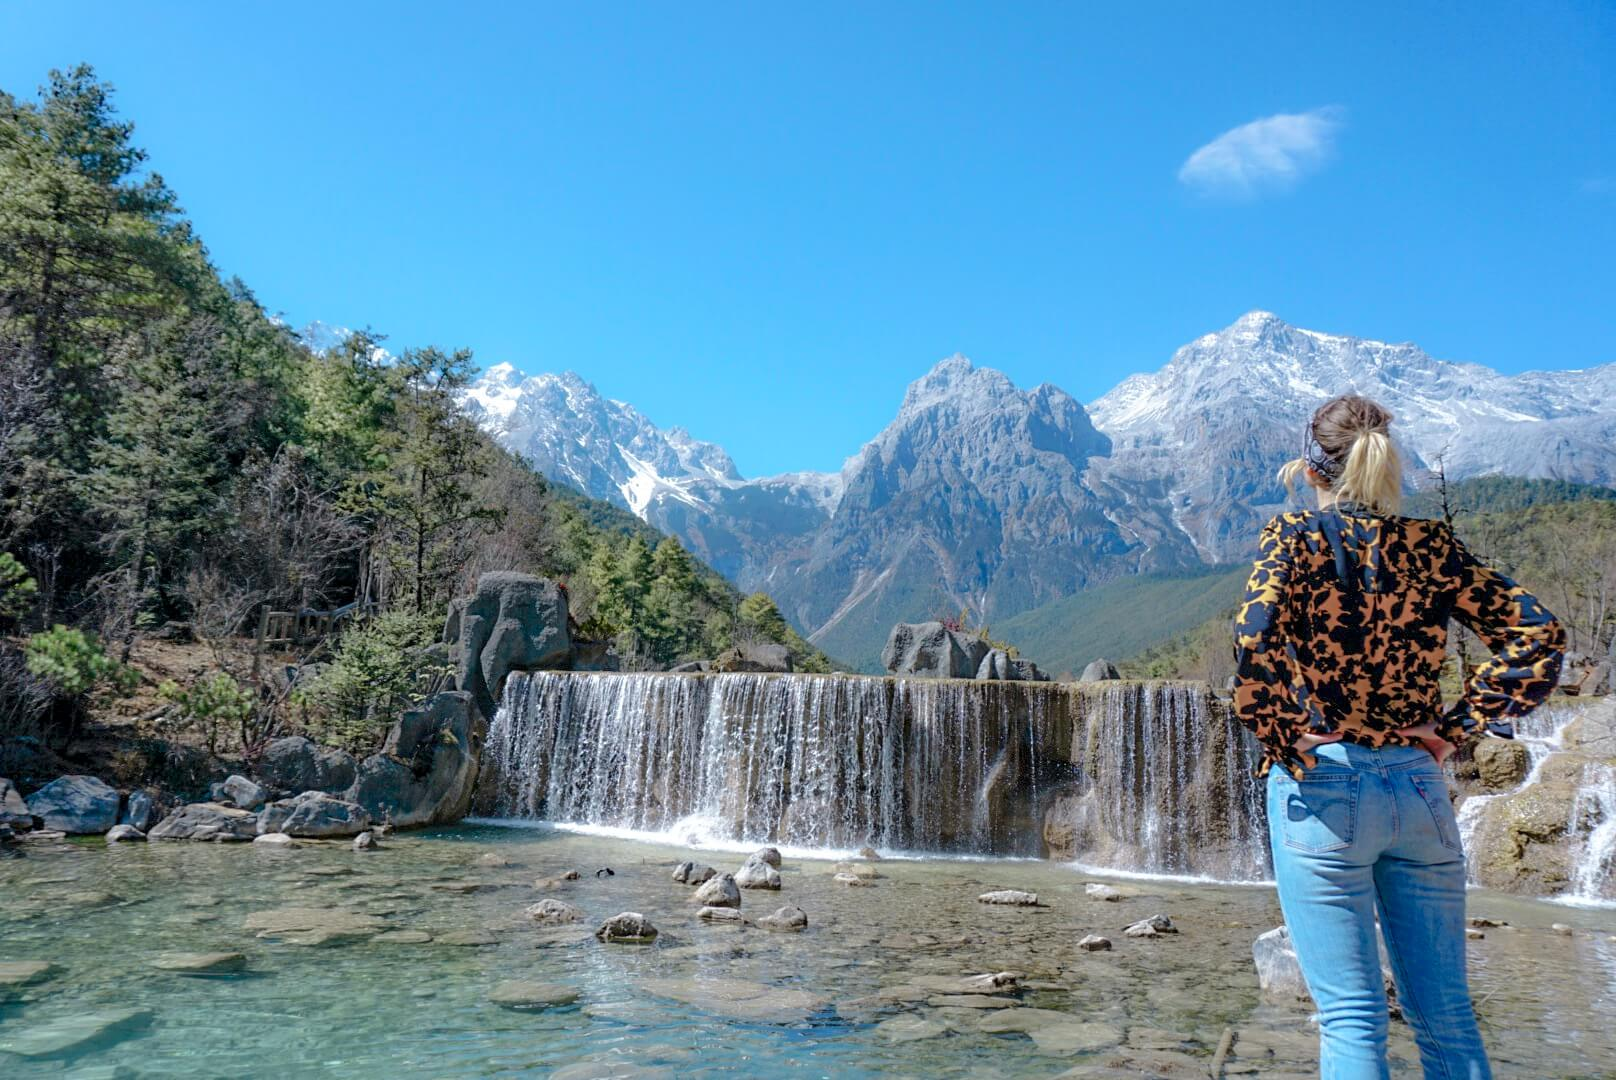 comment aller à blue moon valley Lijiang chine blog voyage